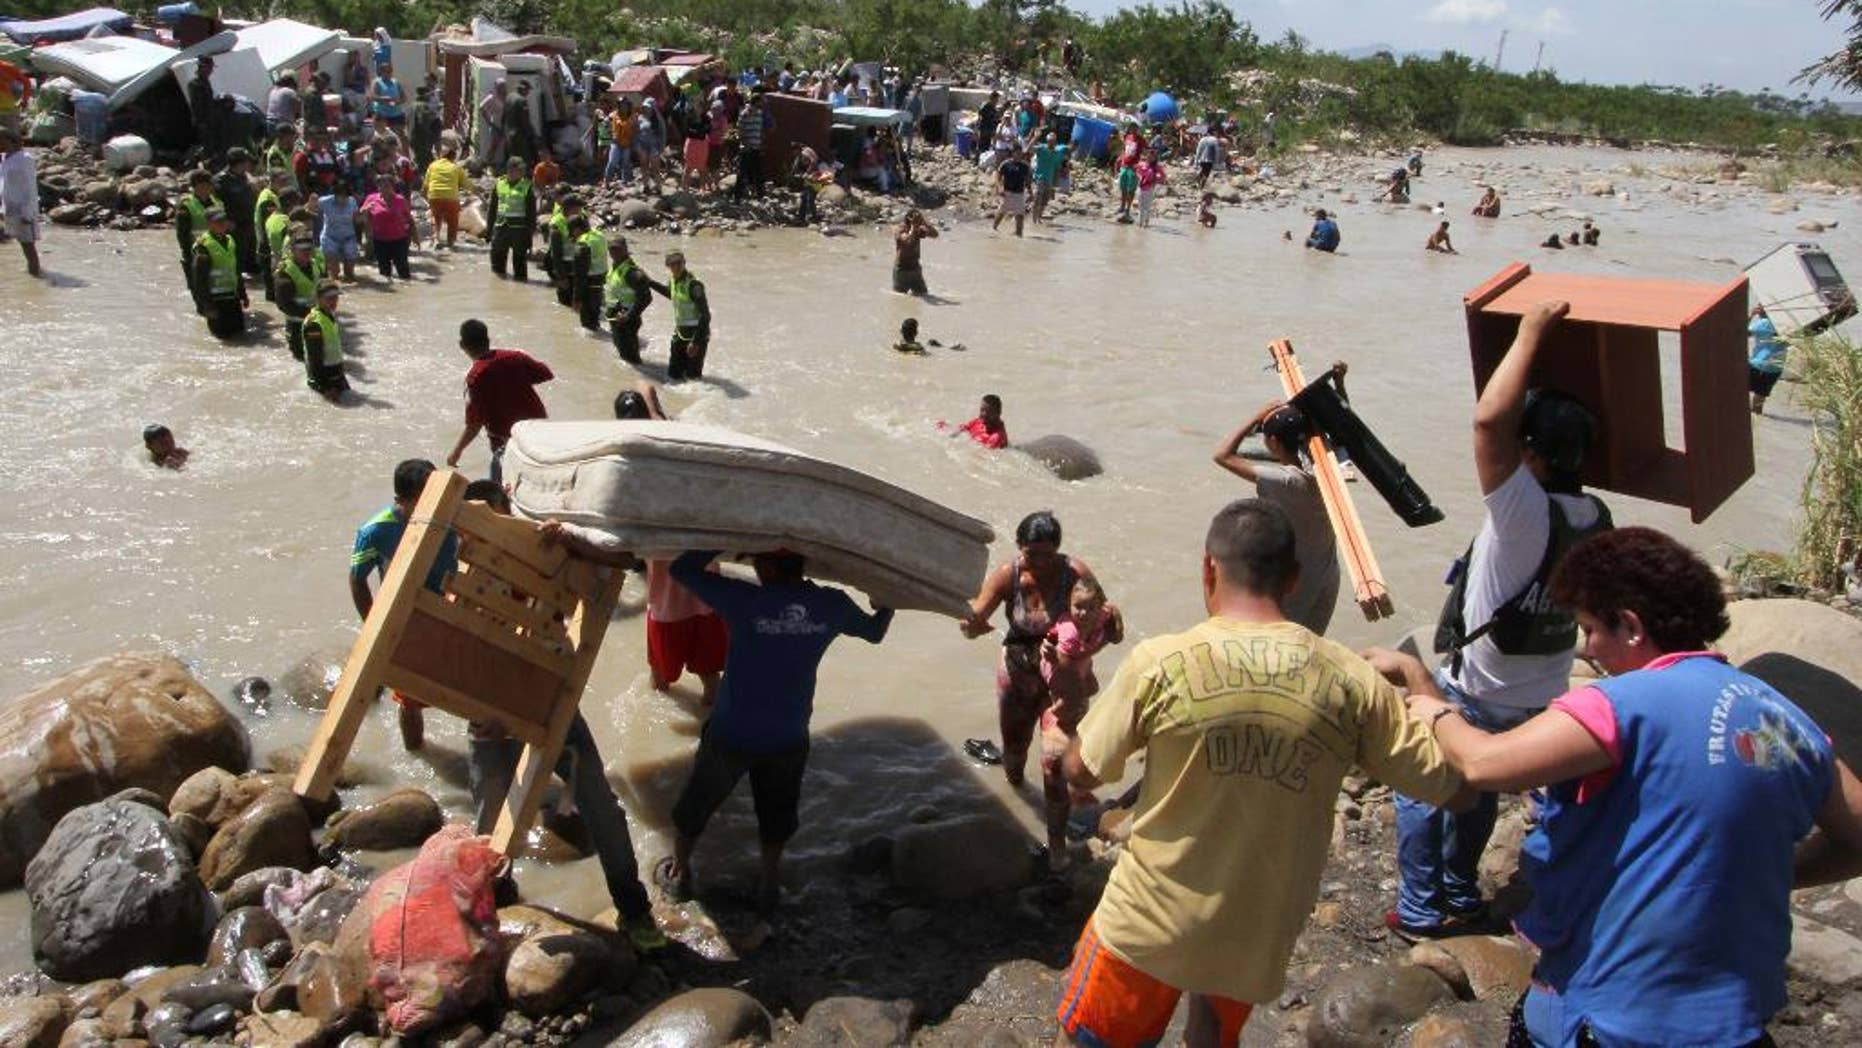 In this Tuesday, Aug. 25, 2015 photo, people carry their household belongings across the Tachira River from Venezuela, foreground, to Colombia, near San Antonio del Tachira, Venezuela, during a mass exodus of Colombians living on the Venezuelan side of the border. Venezuelan President Nicolas Maduro vowed to extend a crackdown on illegal migrants from neighboring Colombia he blames for rampant crime and widespread shortages, while authorities across the border struggled to attend to droves of returning deportees.  (AP Photo/Eliecer Mantilla)